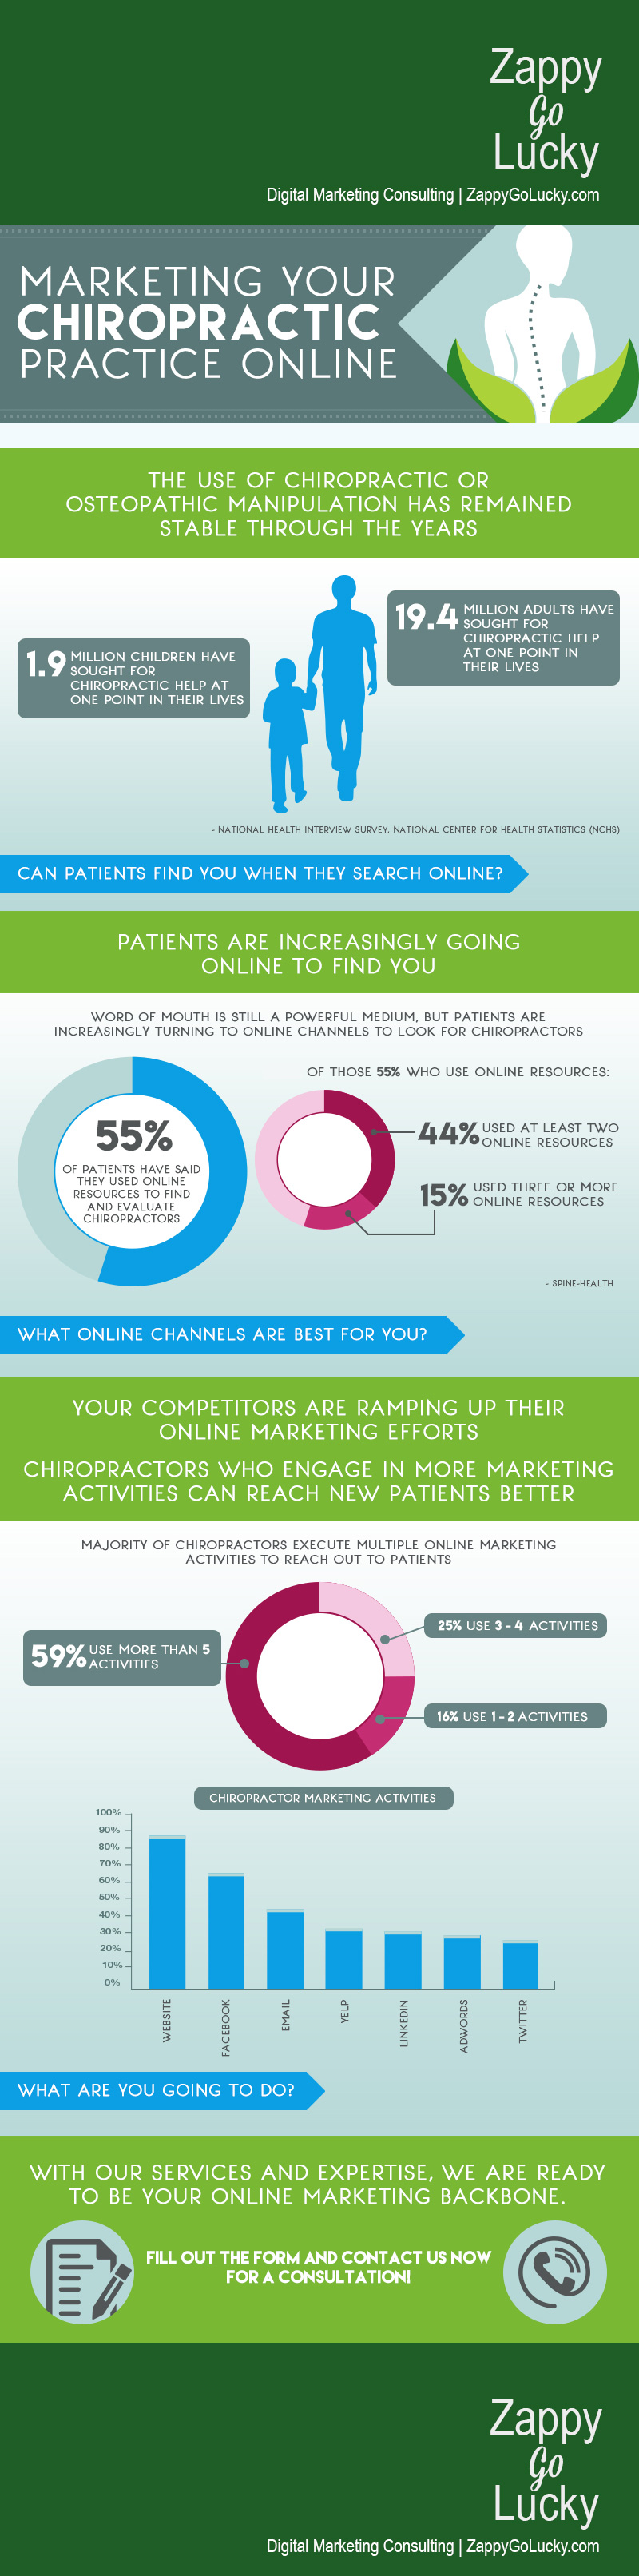 Marketing for Chiropractors Infographic